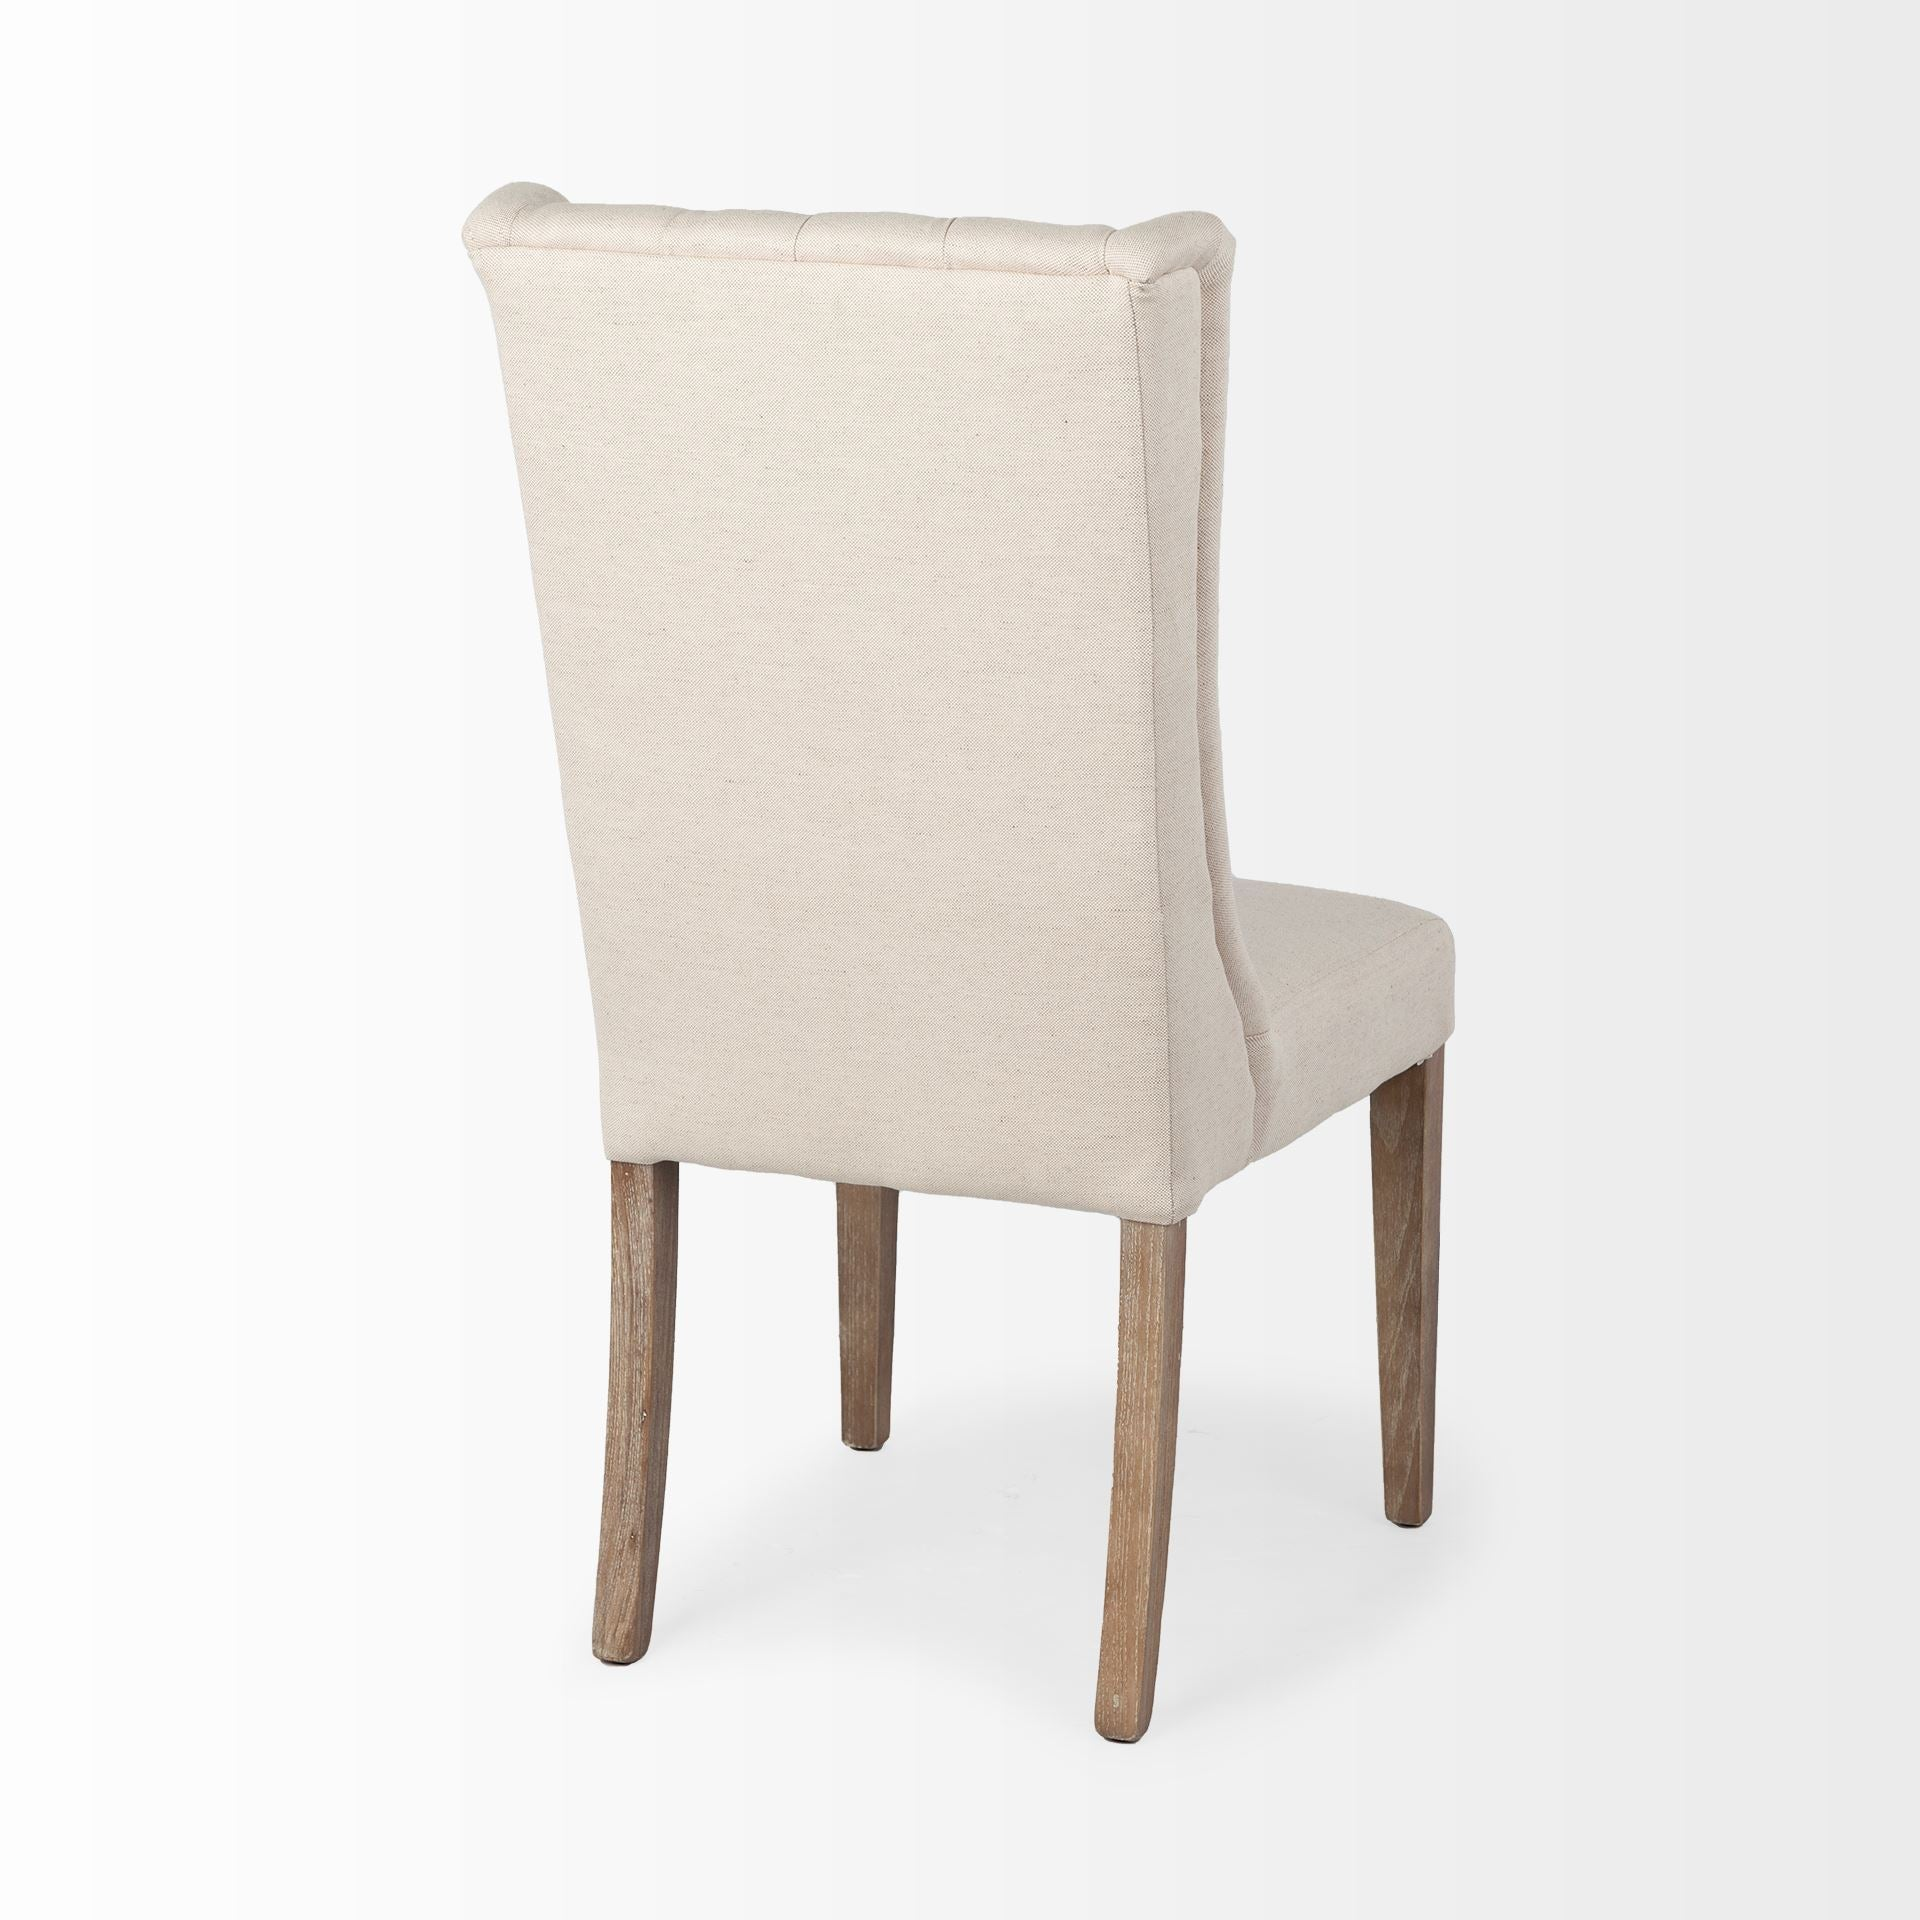 Jimelle Dining Chair Beige Featuring Plush Linen Seating With A Tufted Back